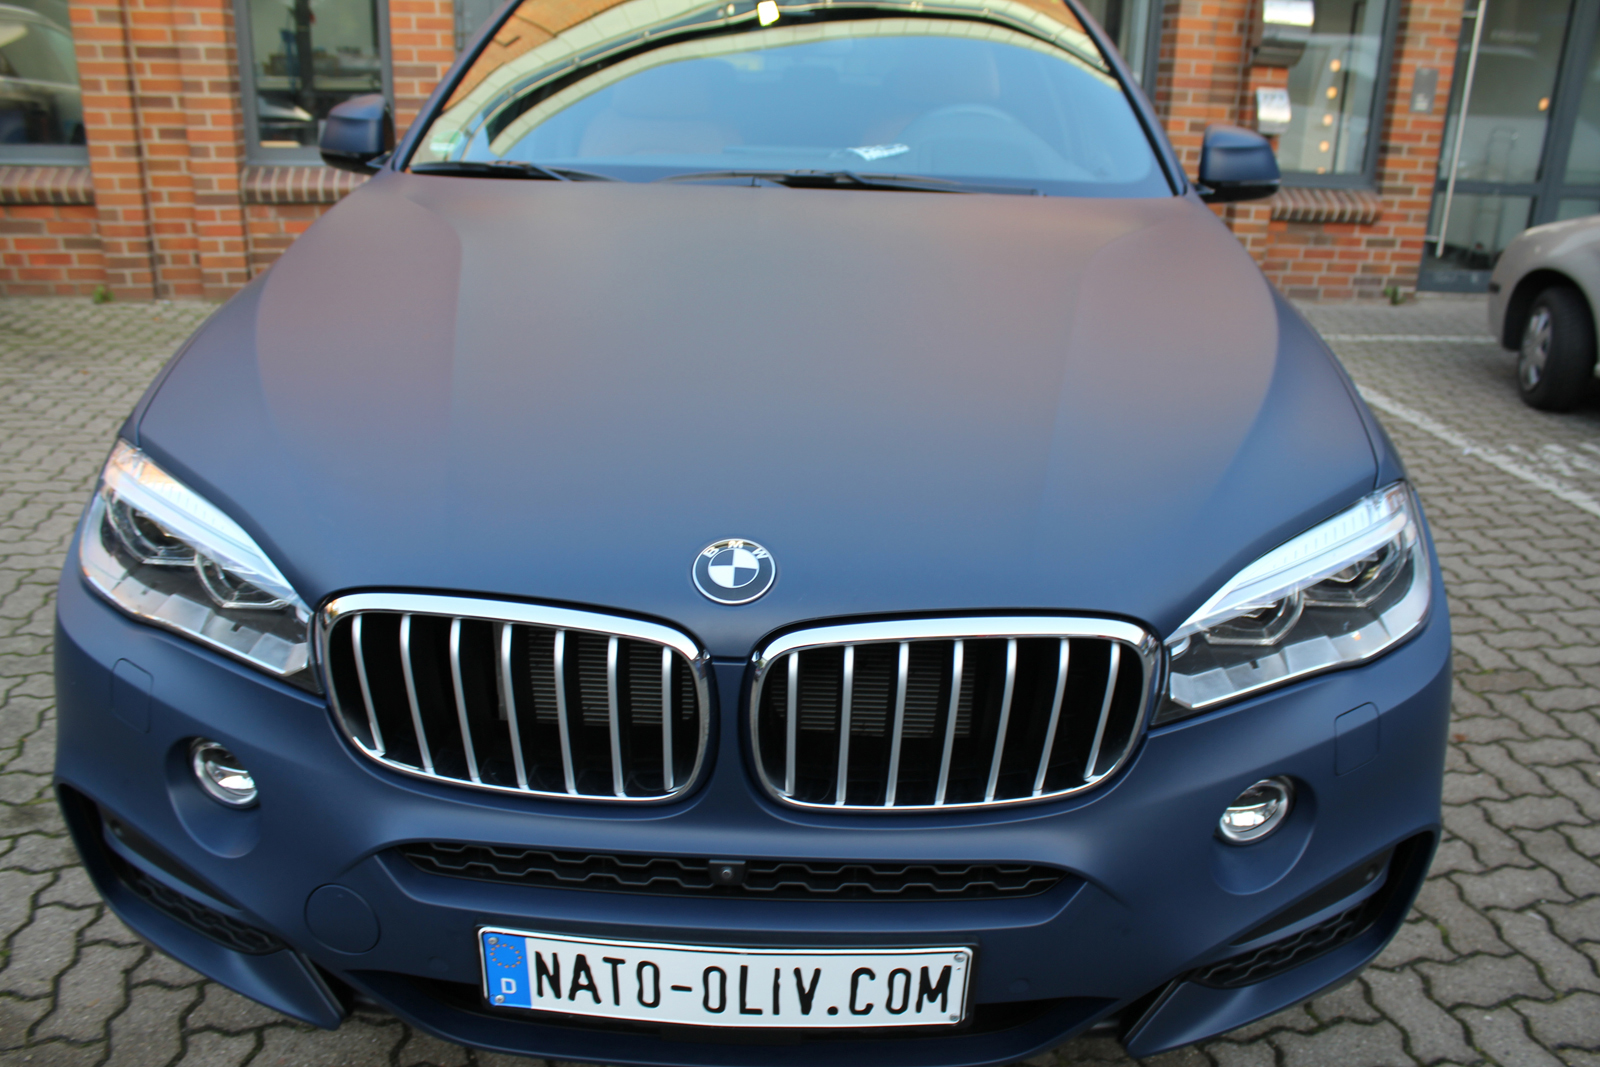 BMW_X6_CAR-WRAPPING_YACHTBLAU_MATT_08